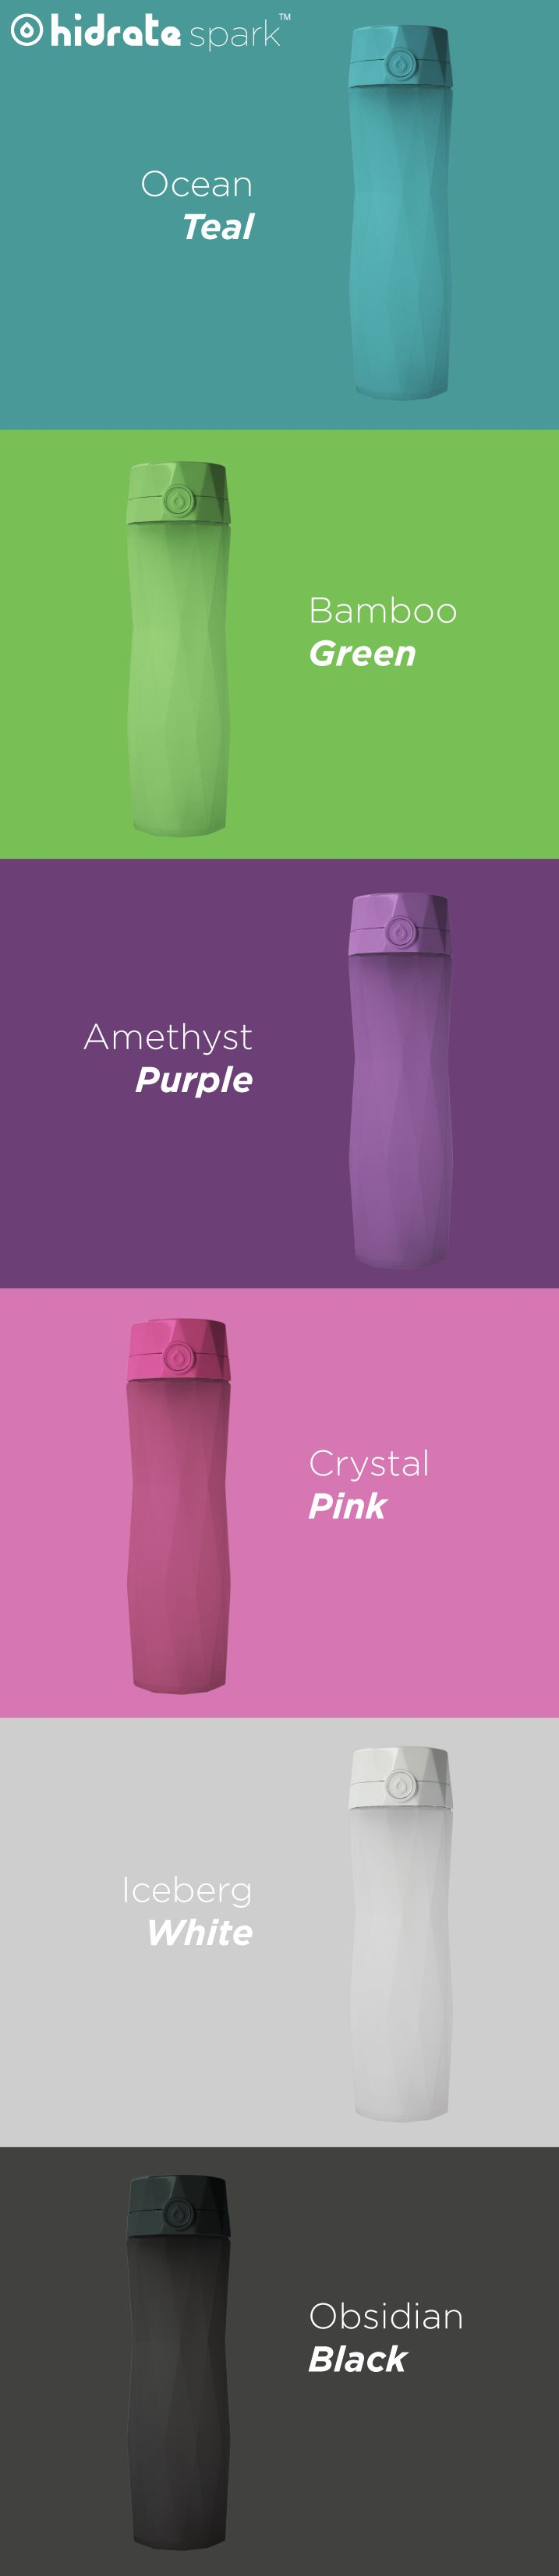 There's a Hidrate Spark for every color of you! Stay hydrated with the most stylish and smartest water bottle ever. It automatically keeps track of how much you drink, syncs to an app on your phone, and GLOWS to remind you to stay hydrated. #HidrateSpark #SmartWaterBottle #WaterBottle #Style #Health #Fitness #fitfam #exercise #workout #water #hydration #wellness